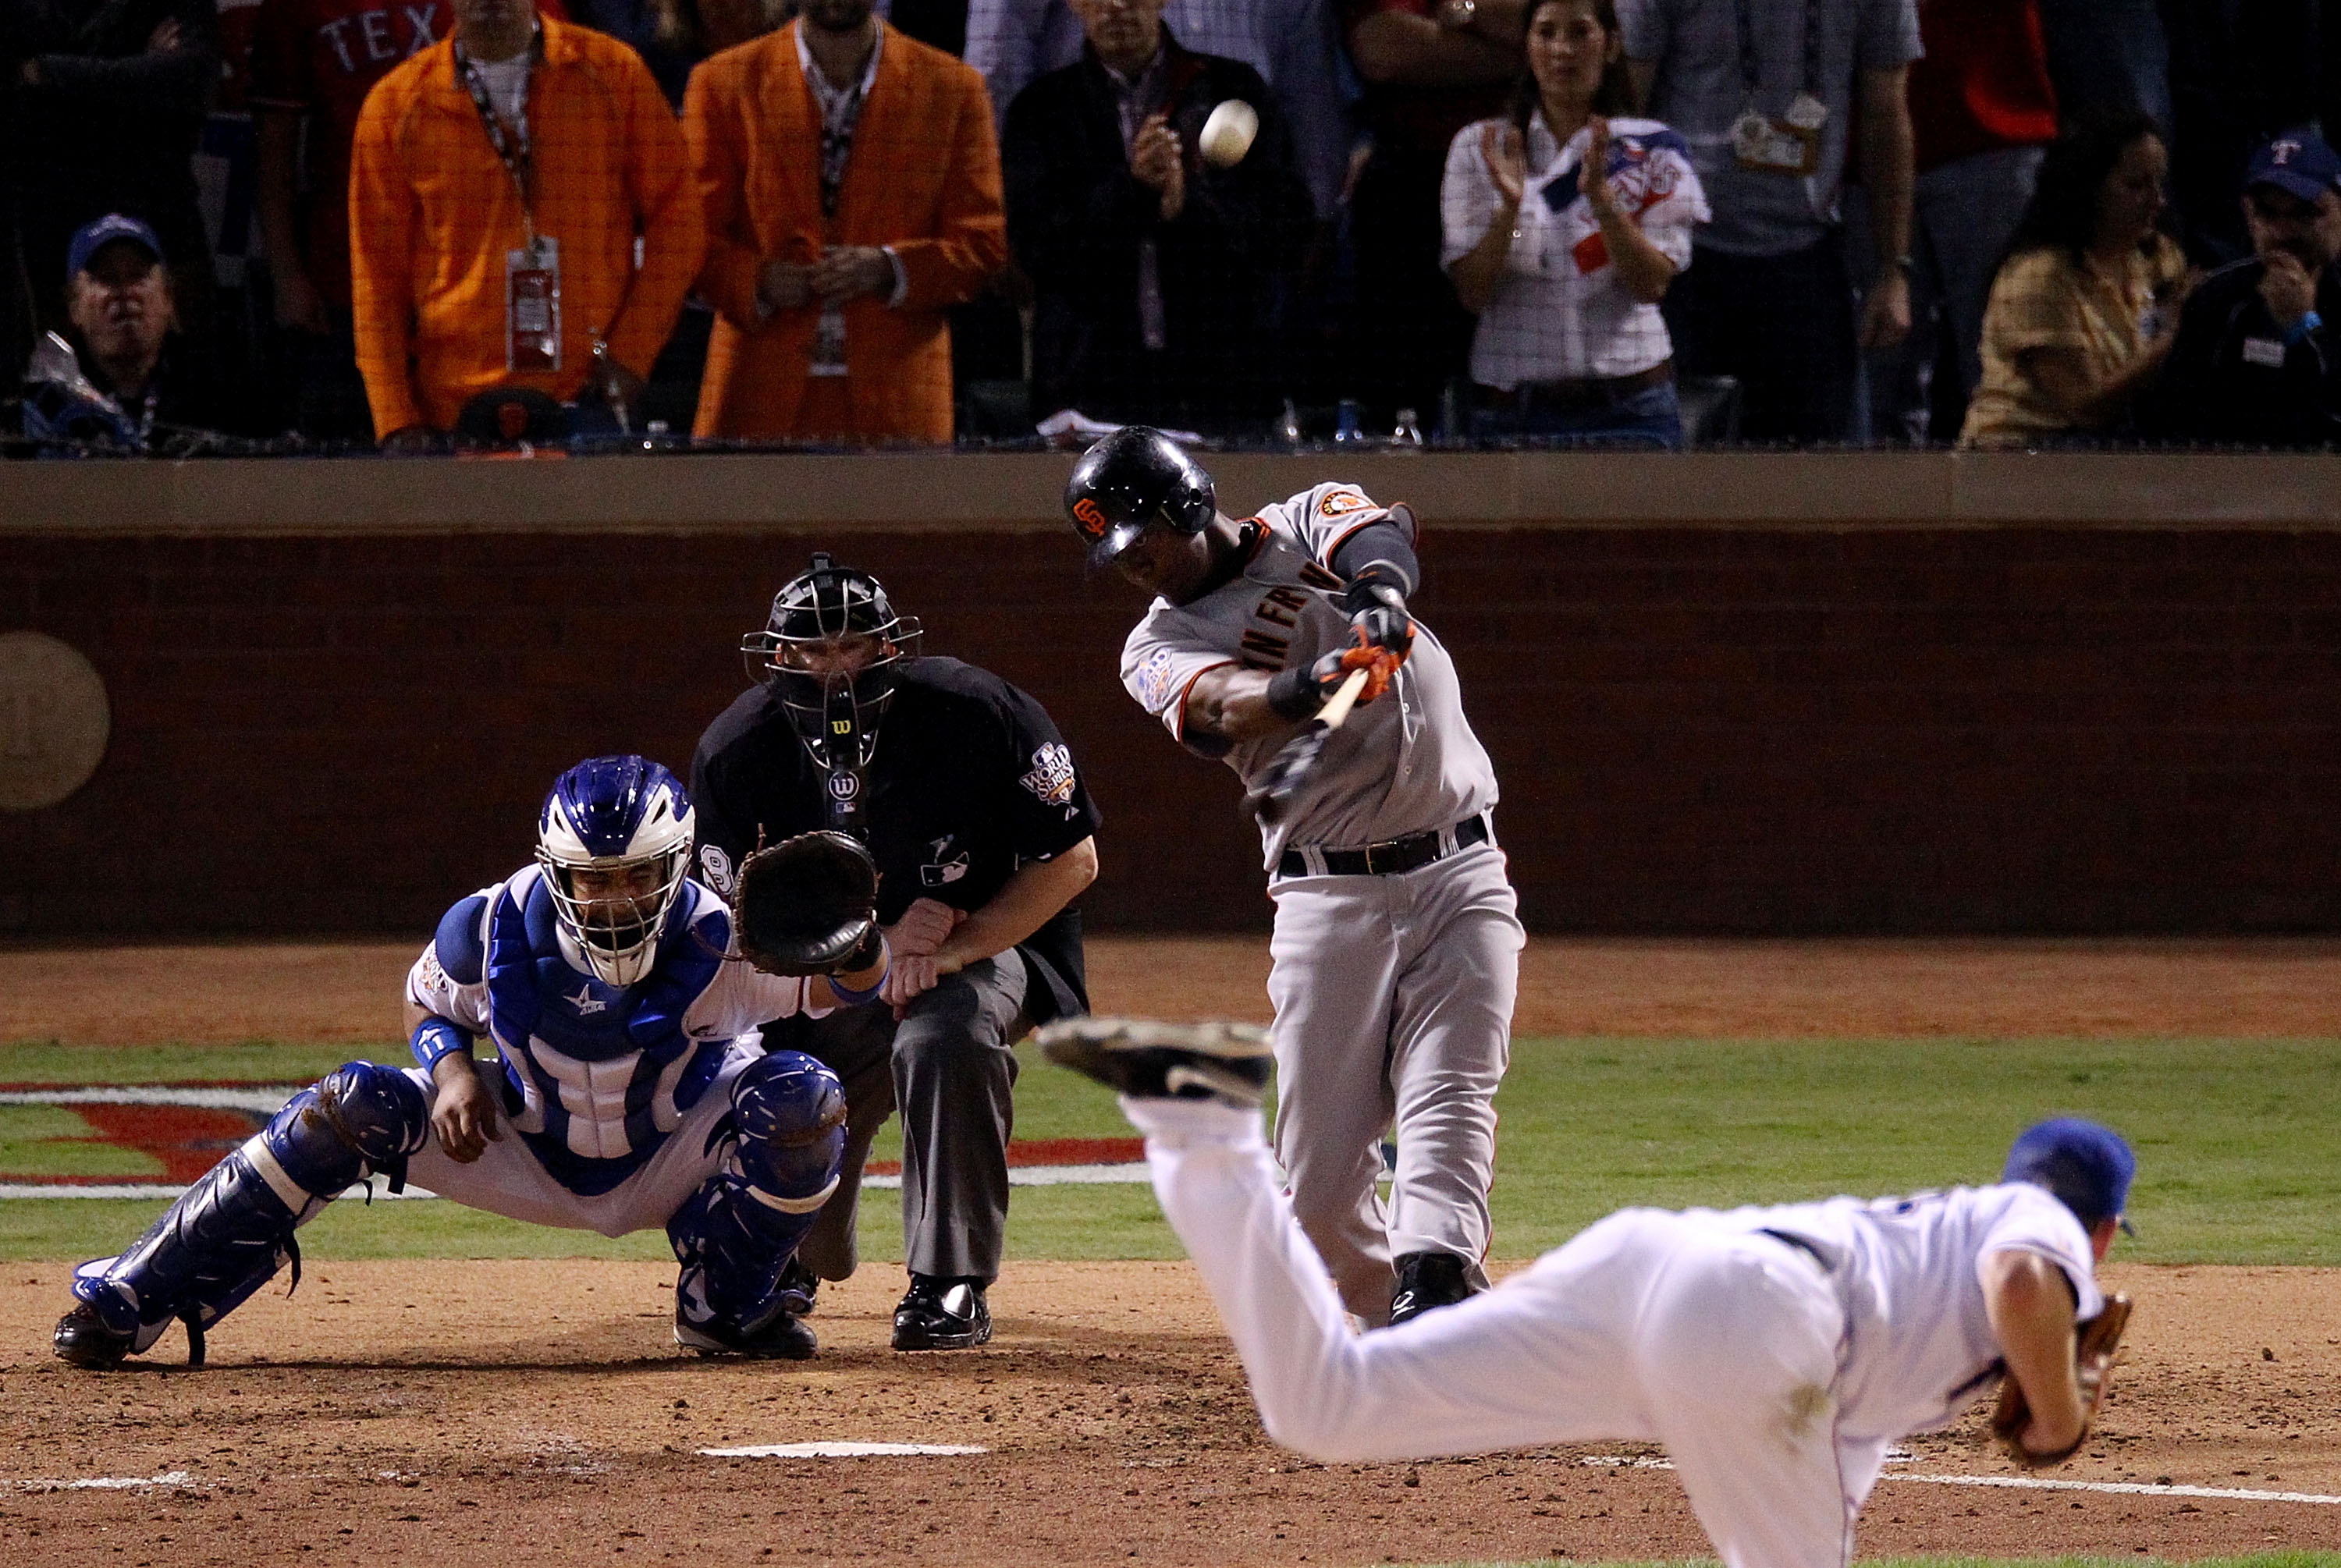 ARLINGTON, TX - NOVEMBER 01: Edgar Renteria #16 of the San Francisco Giants hits a 3-run homer to centerfield against starting pitcher Cliff Lee #33 of the Texas Rangers in the top of the seventh inning of Game Five of the 2010 MLB World Series at Rangers